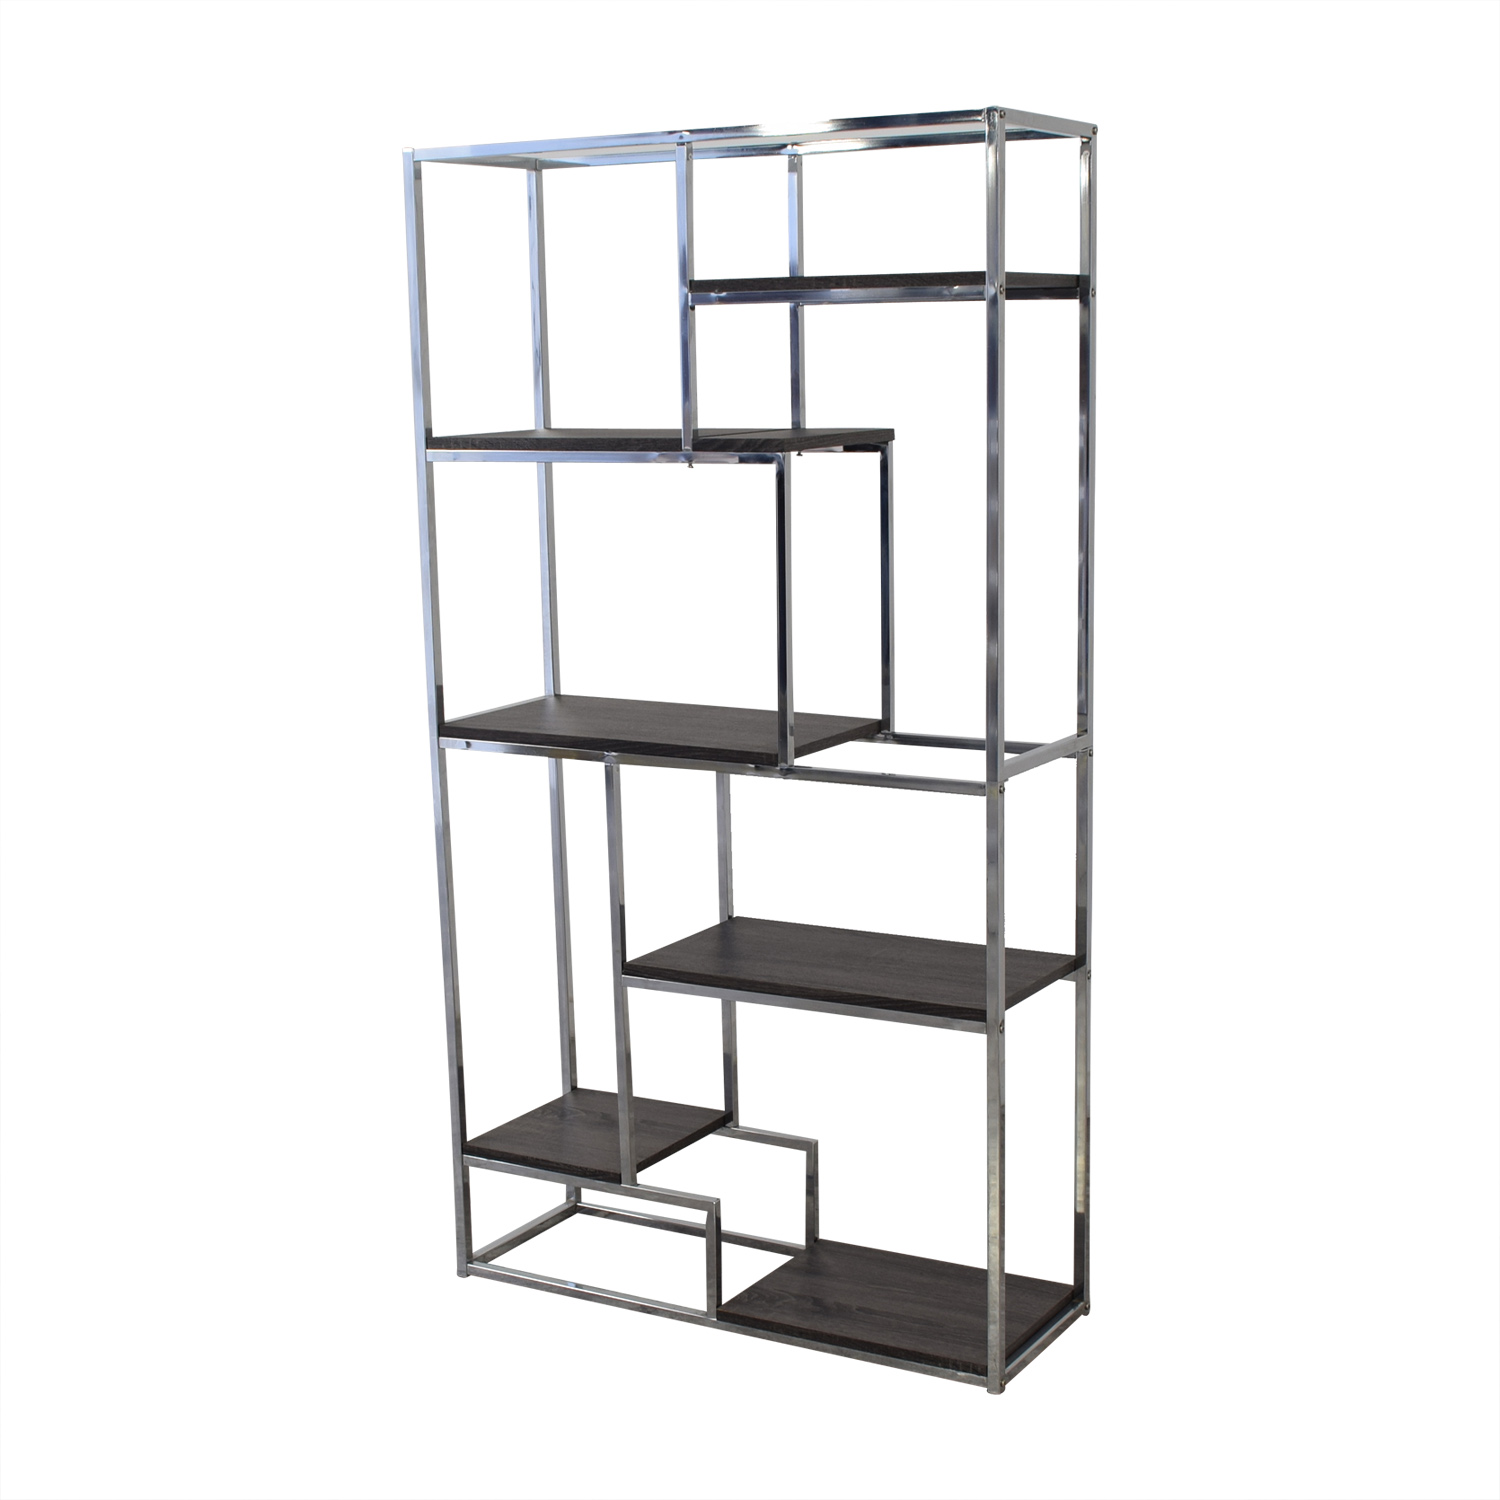 Overstock Overstock Silver Orchard Six Bookshelves Storage